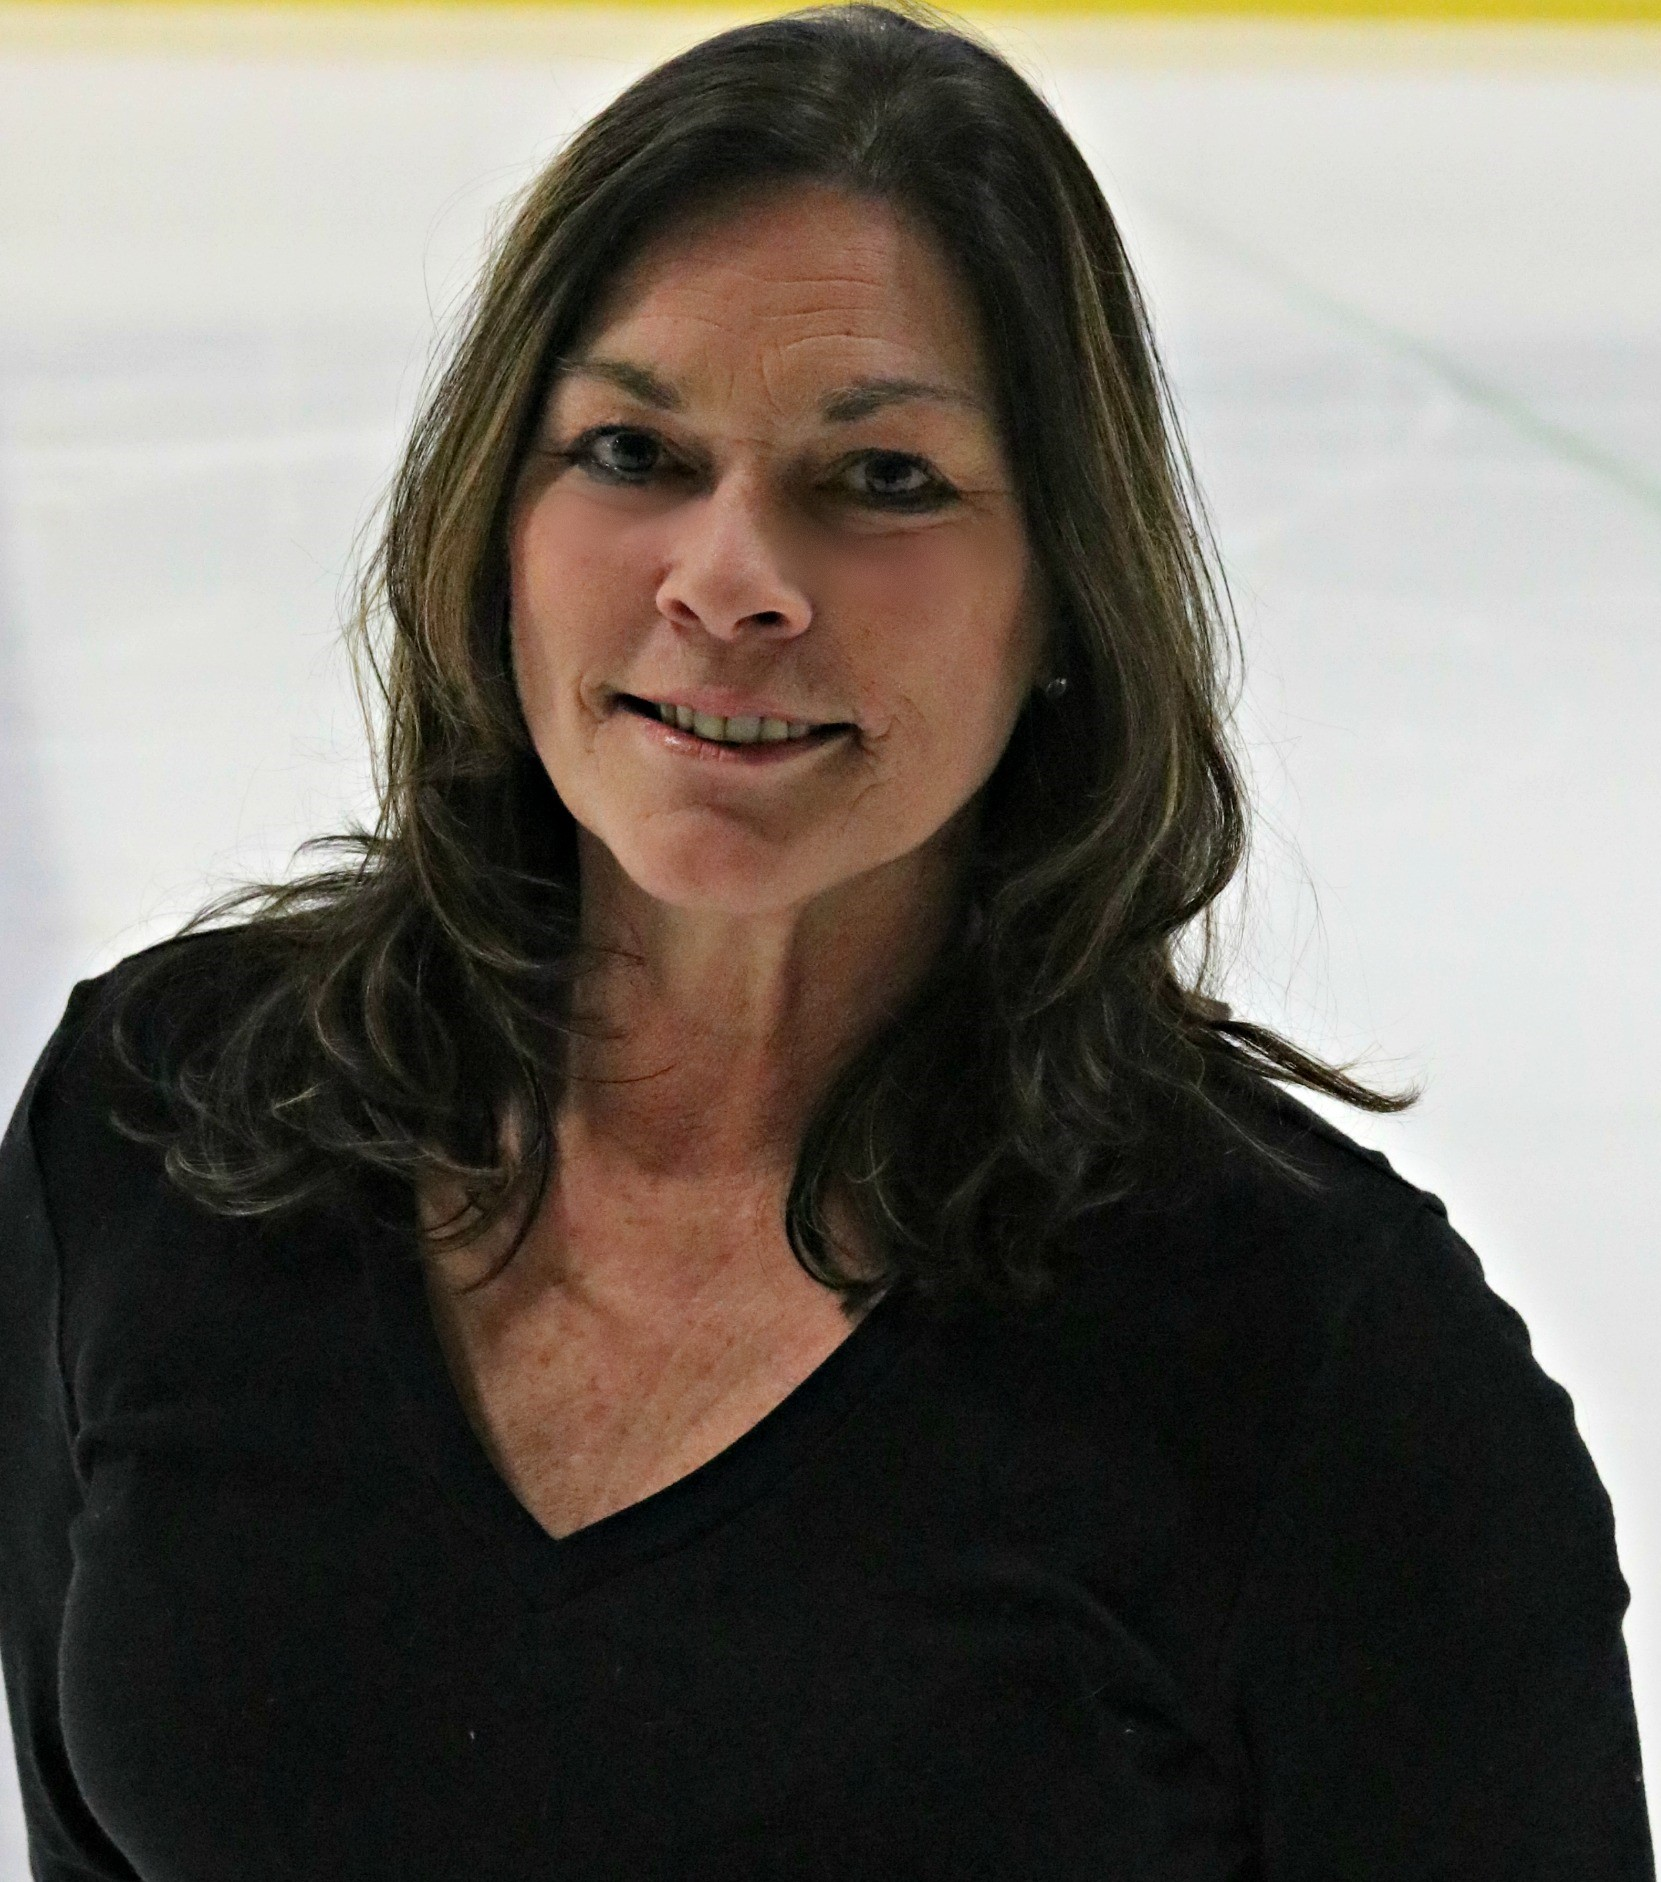 Extreme Ice Center Figure Skating Coach Pam Fultz